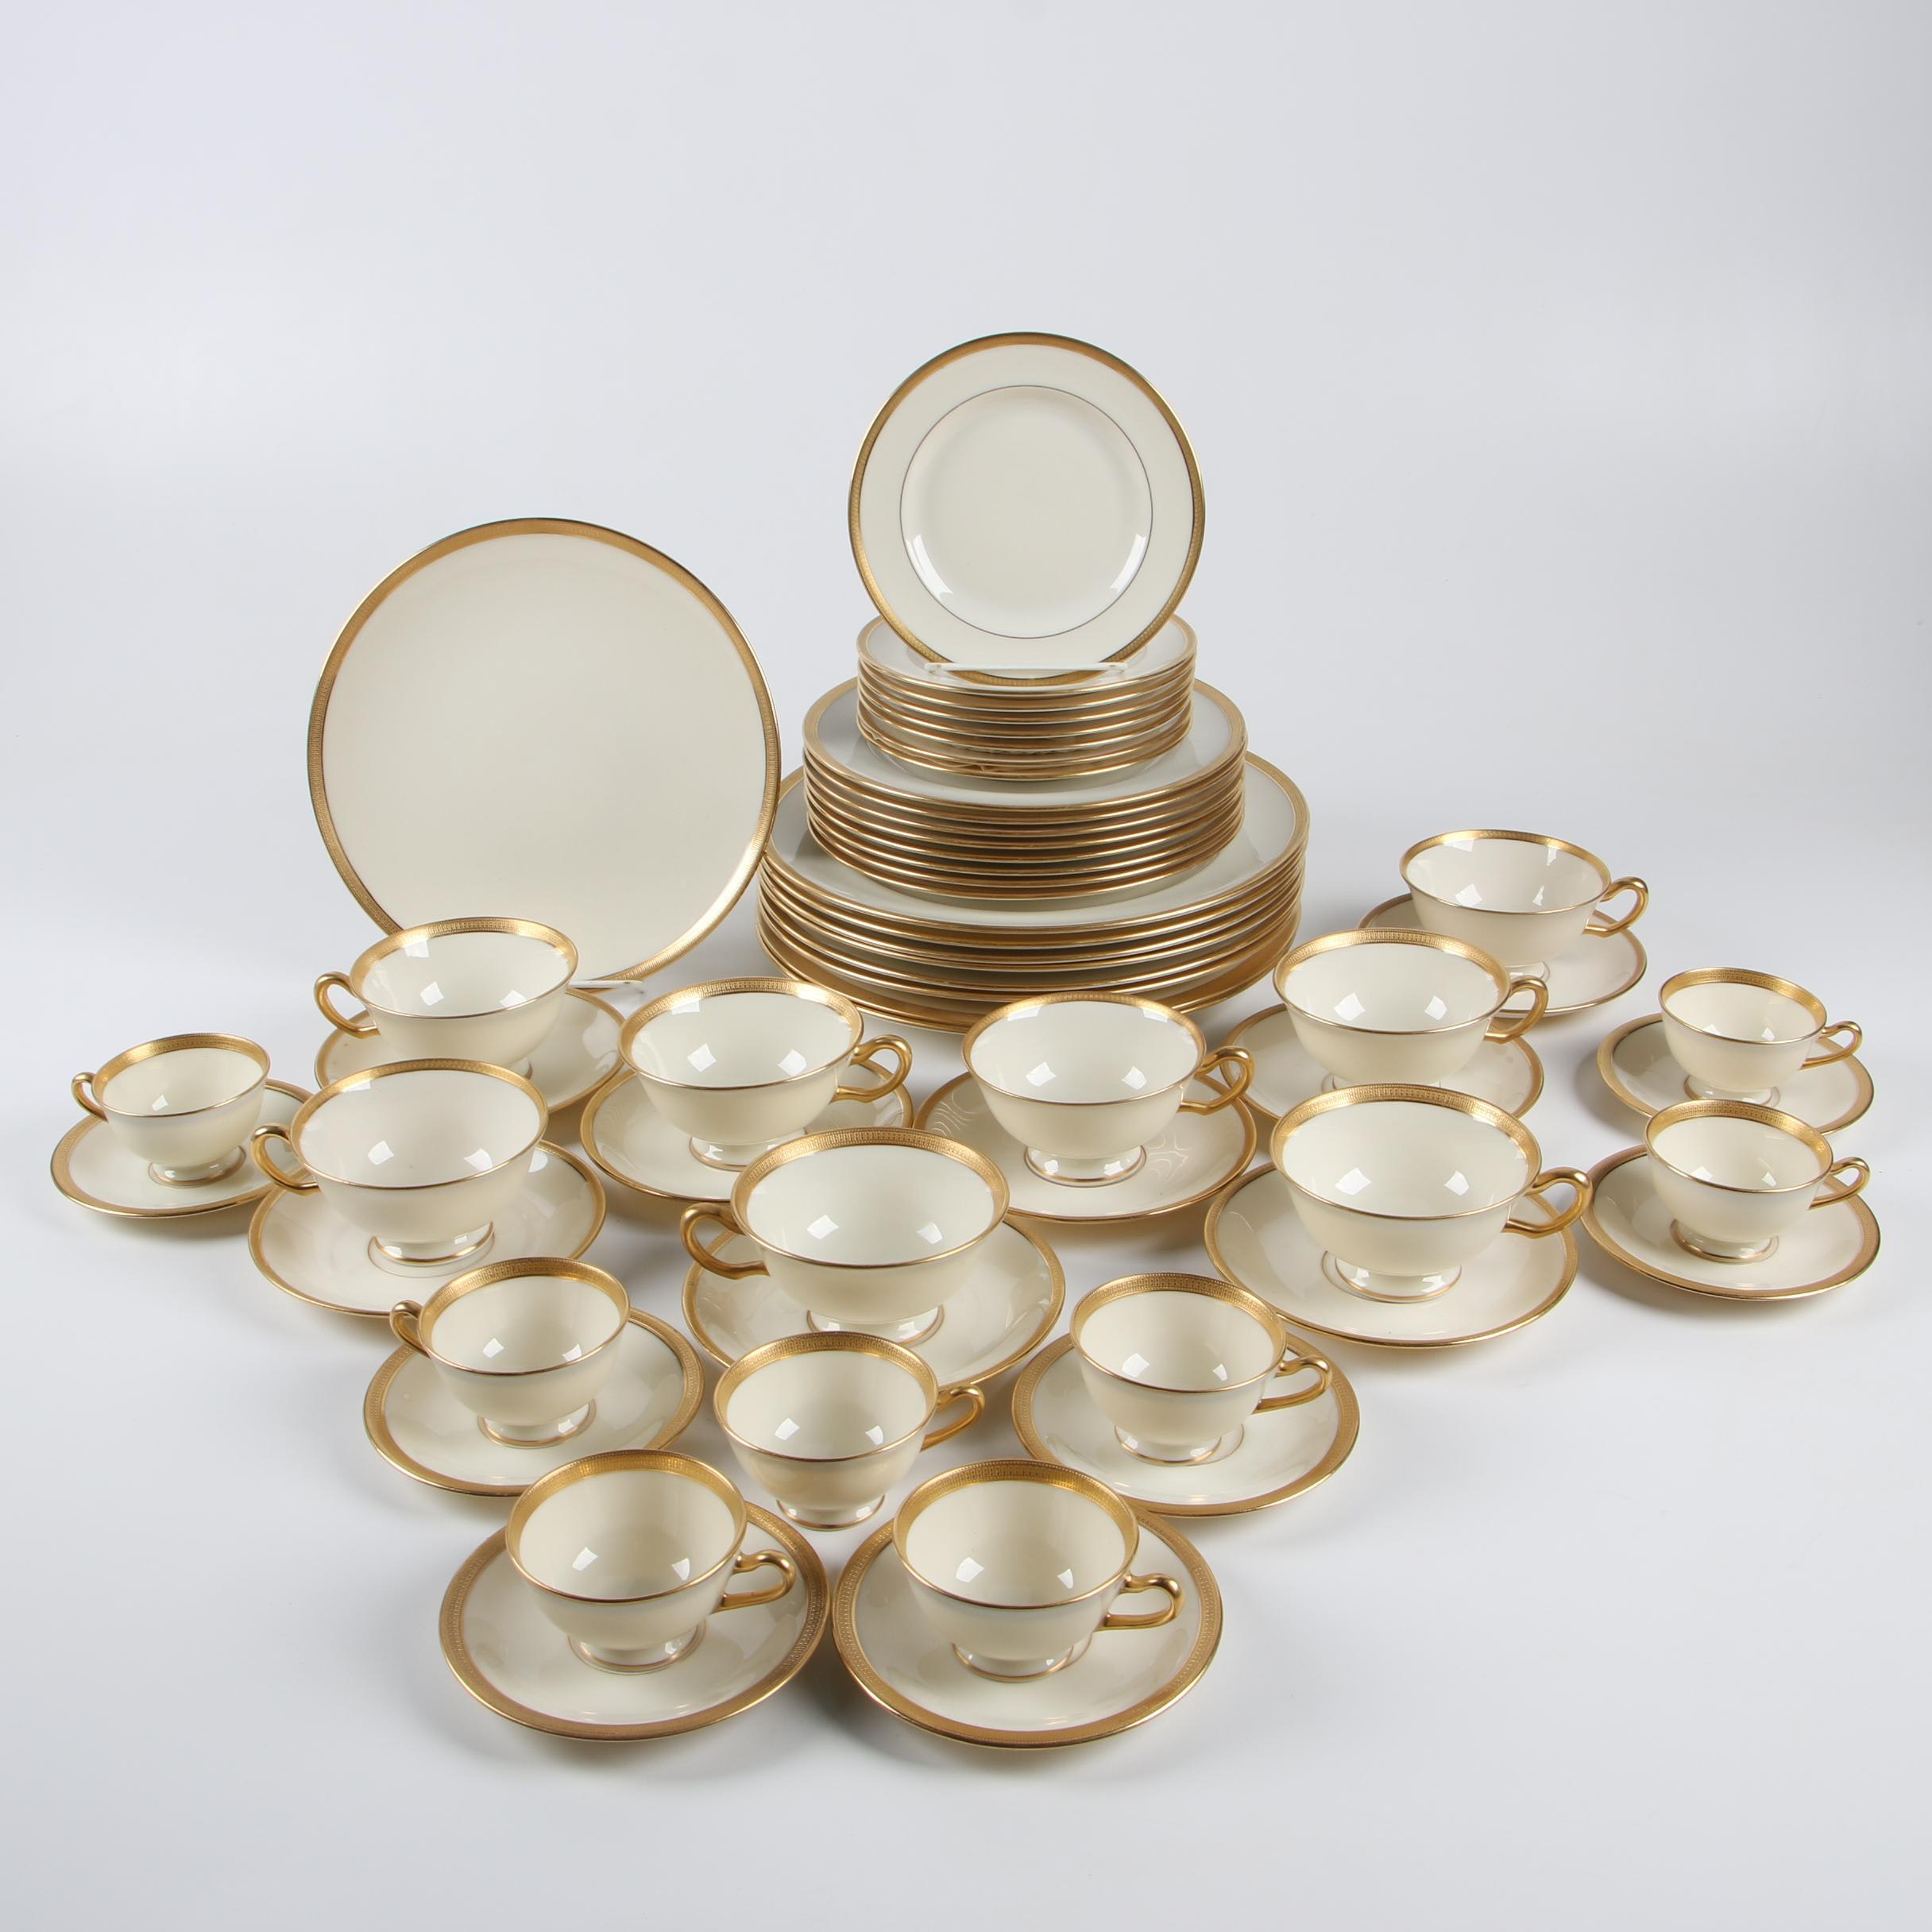 Gilt Rim Lenox Bone China Dinnerware, Early 20th Century